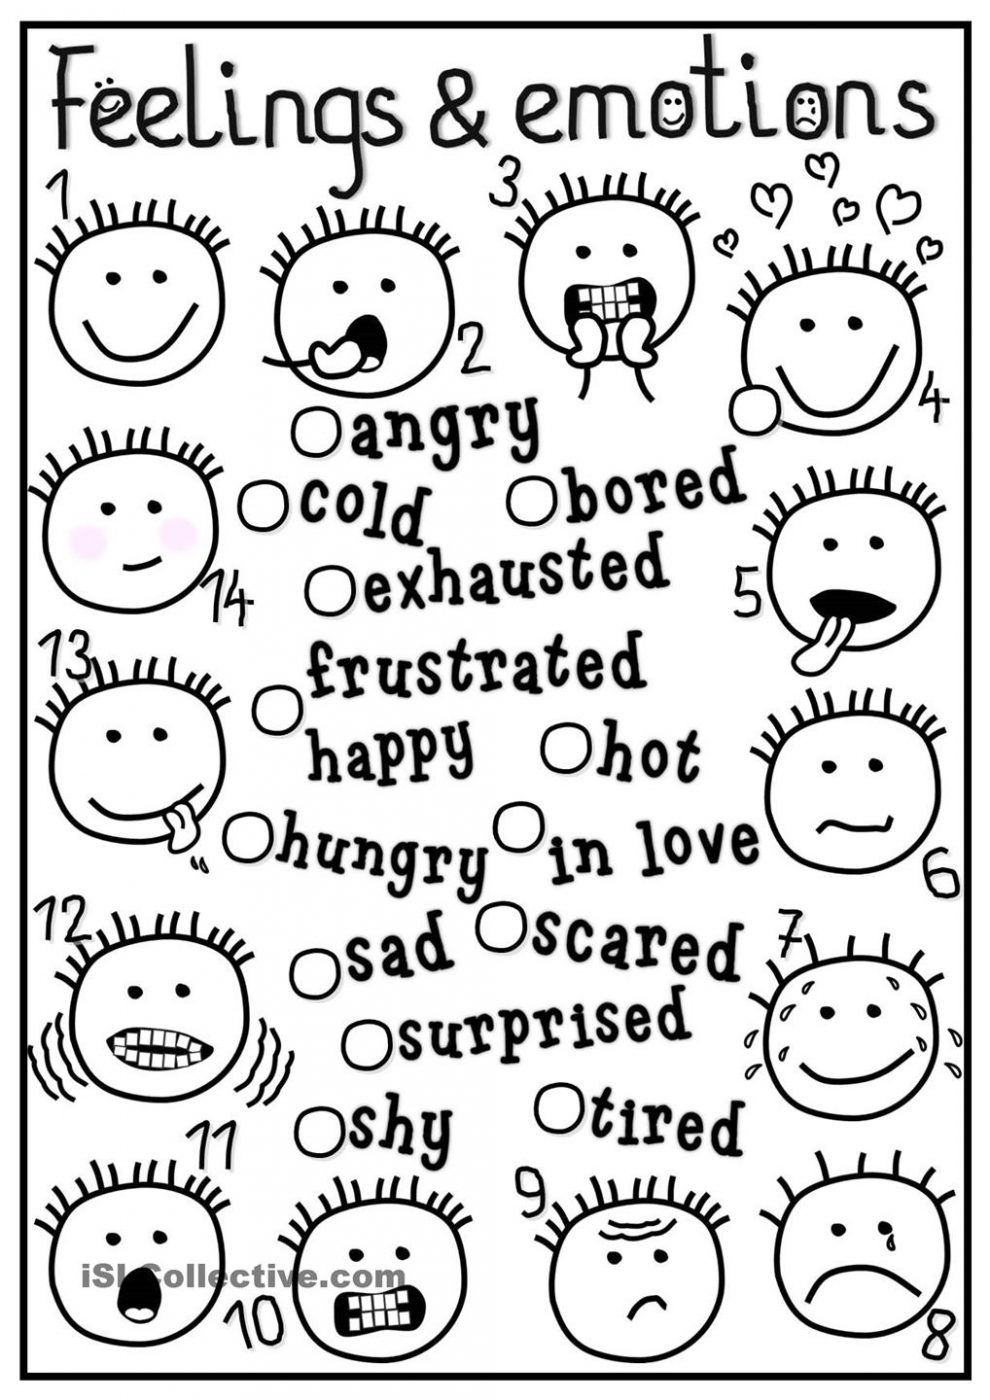 coloring emotions for kids free coloring pages about feelings coloring pages free coloring kids emotions for